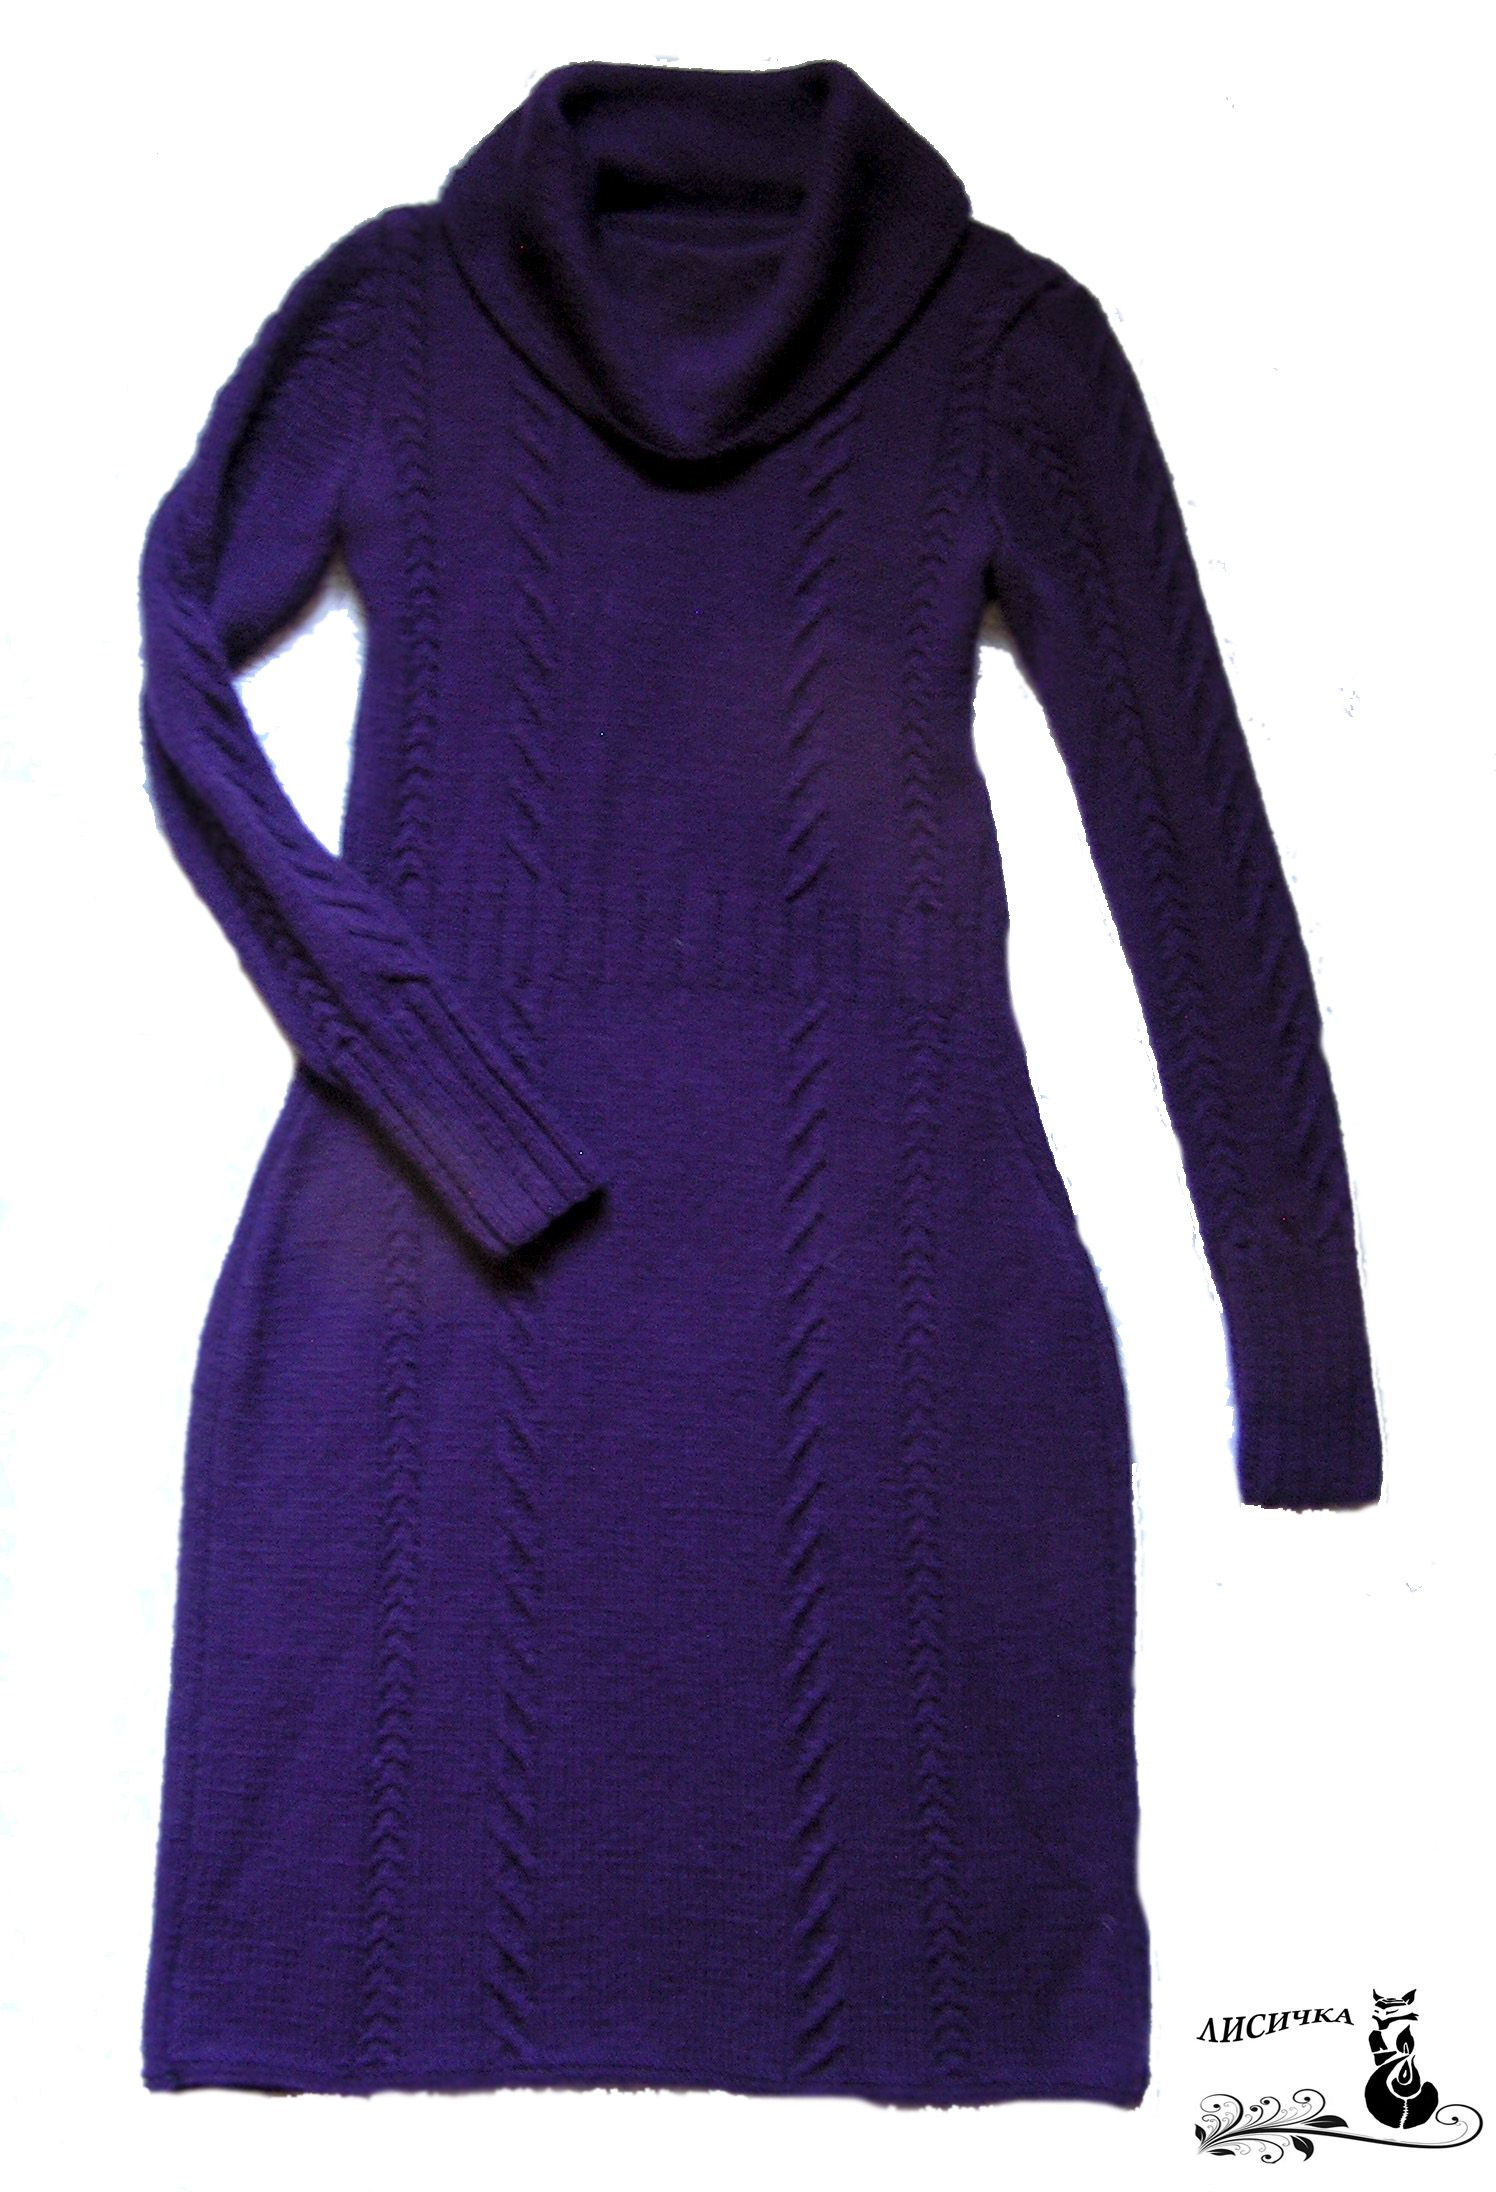 violet clothes knitting dress wool winter